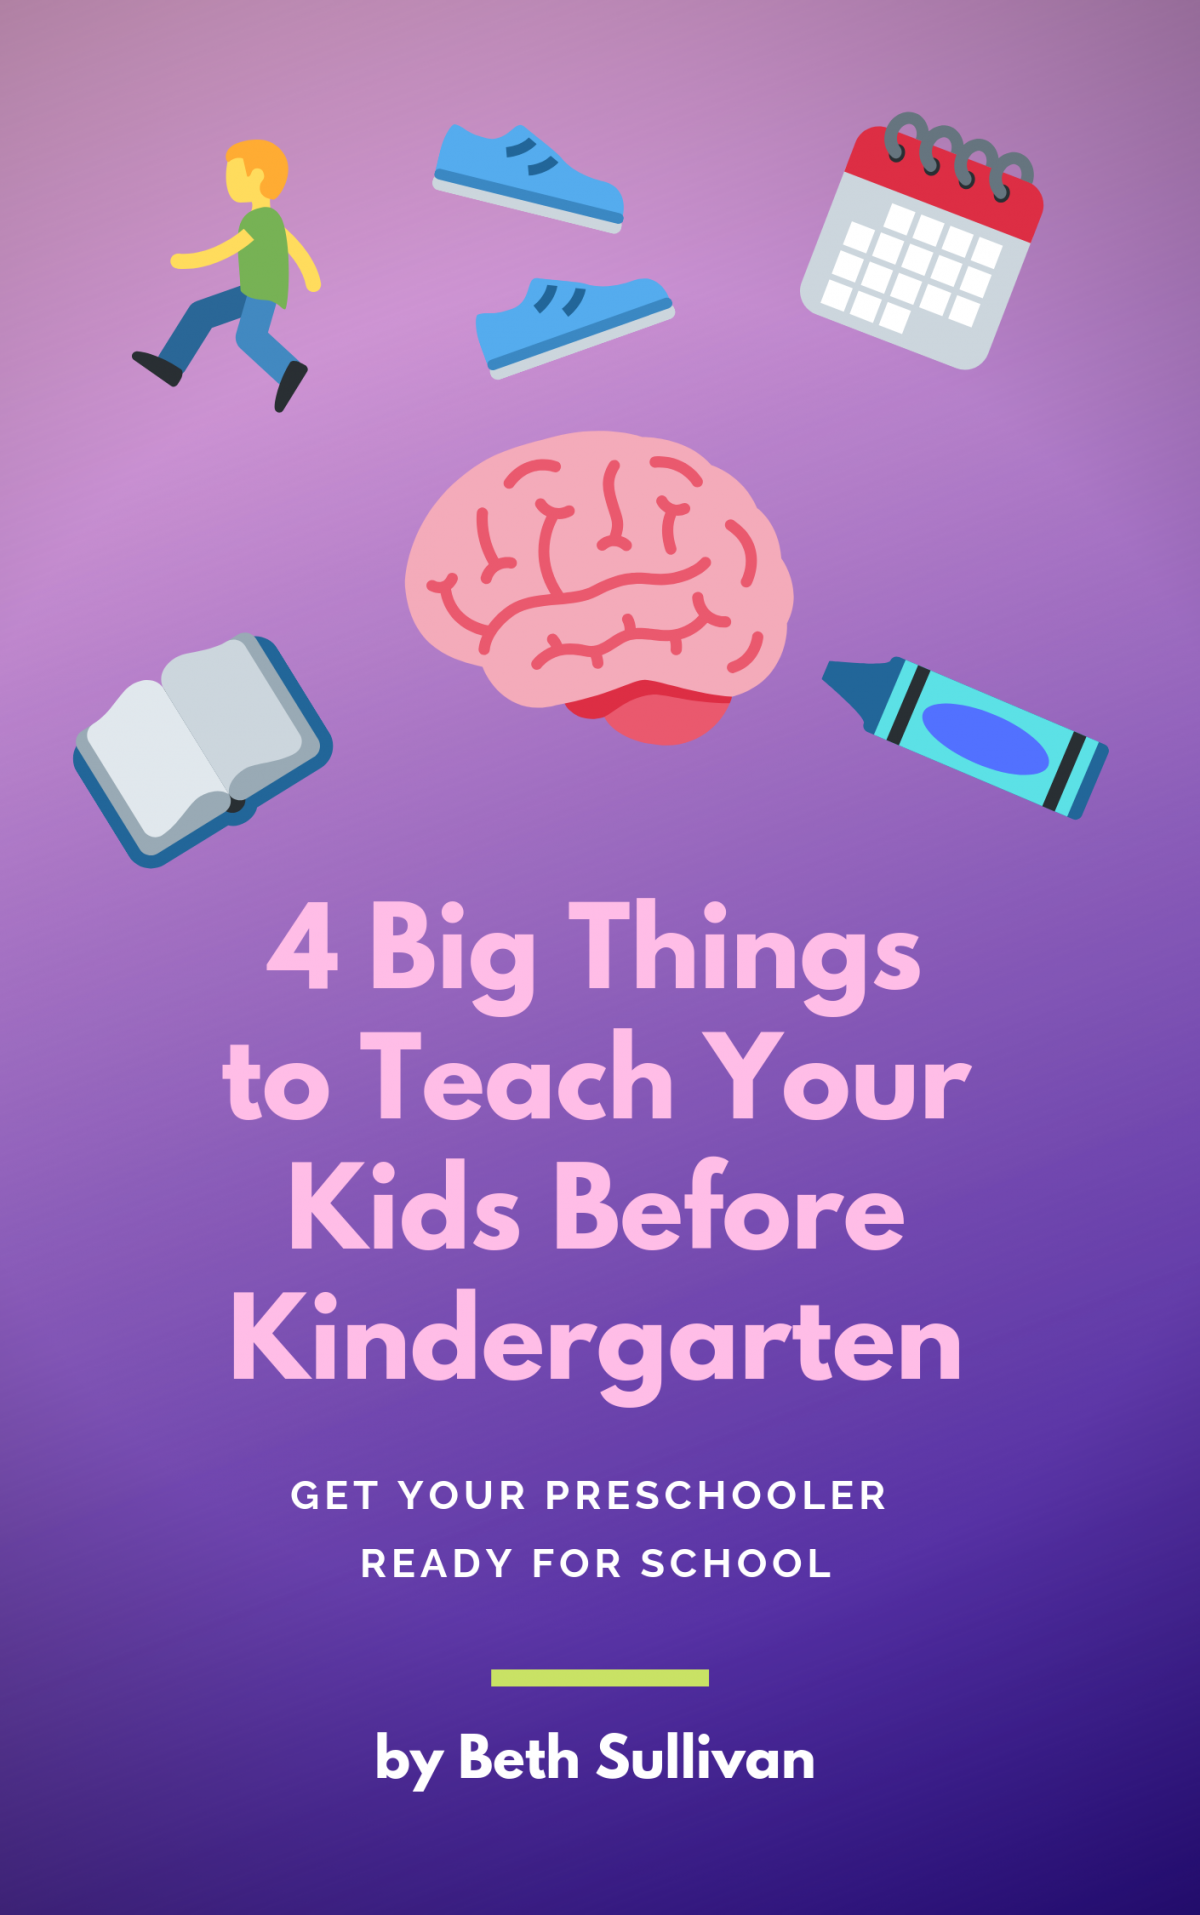 "Are your preschoolers ready to start school? Get the ebook ""4 Big Things to Teach Your Kids Before Kindergarten"" at Amazon today."